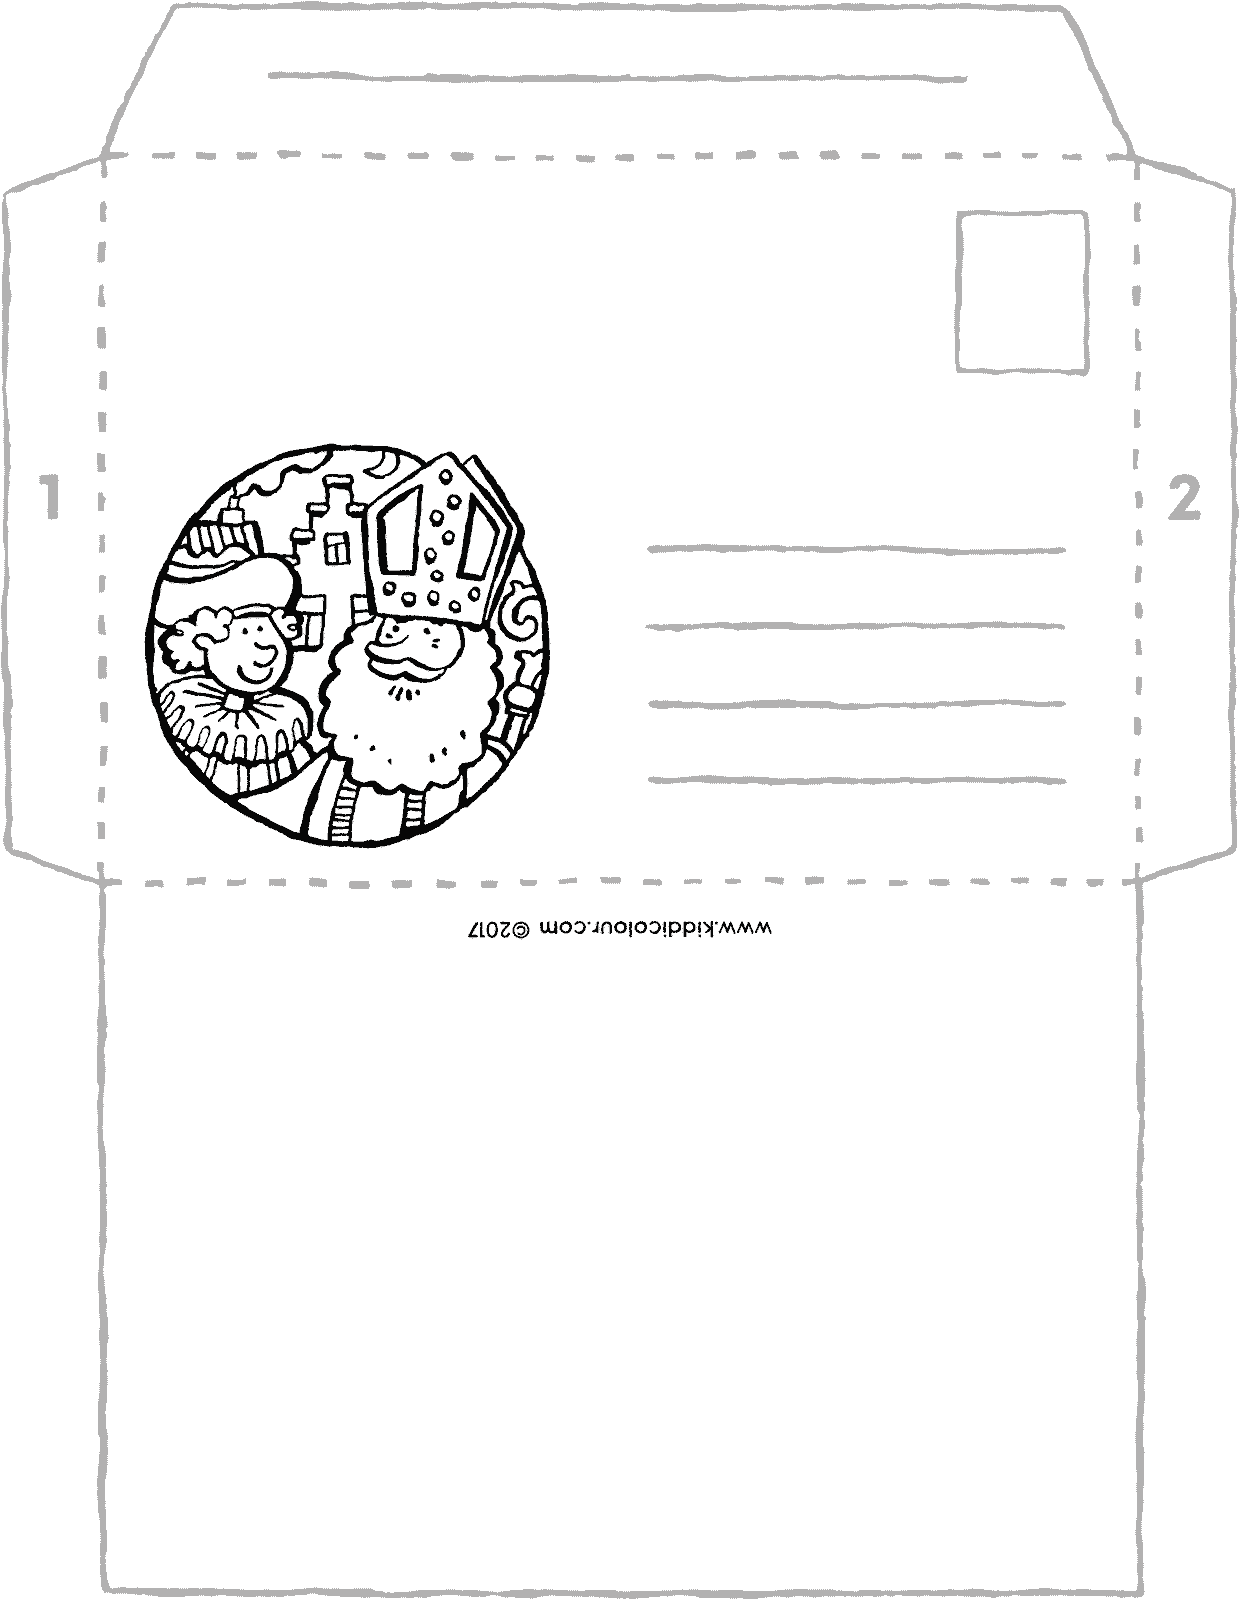 Saint Nicholas envelope colouring page page drawing picture 01V